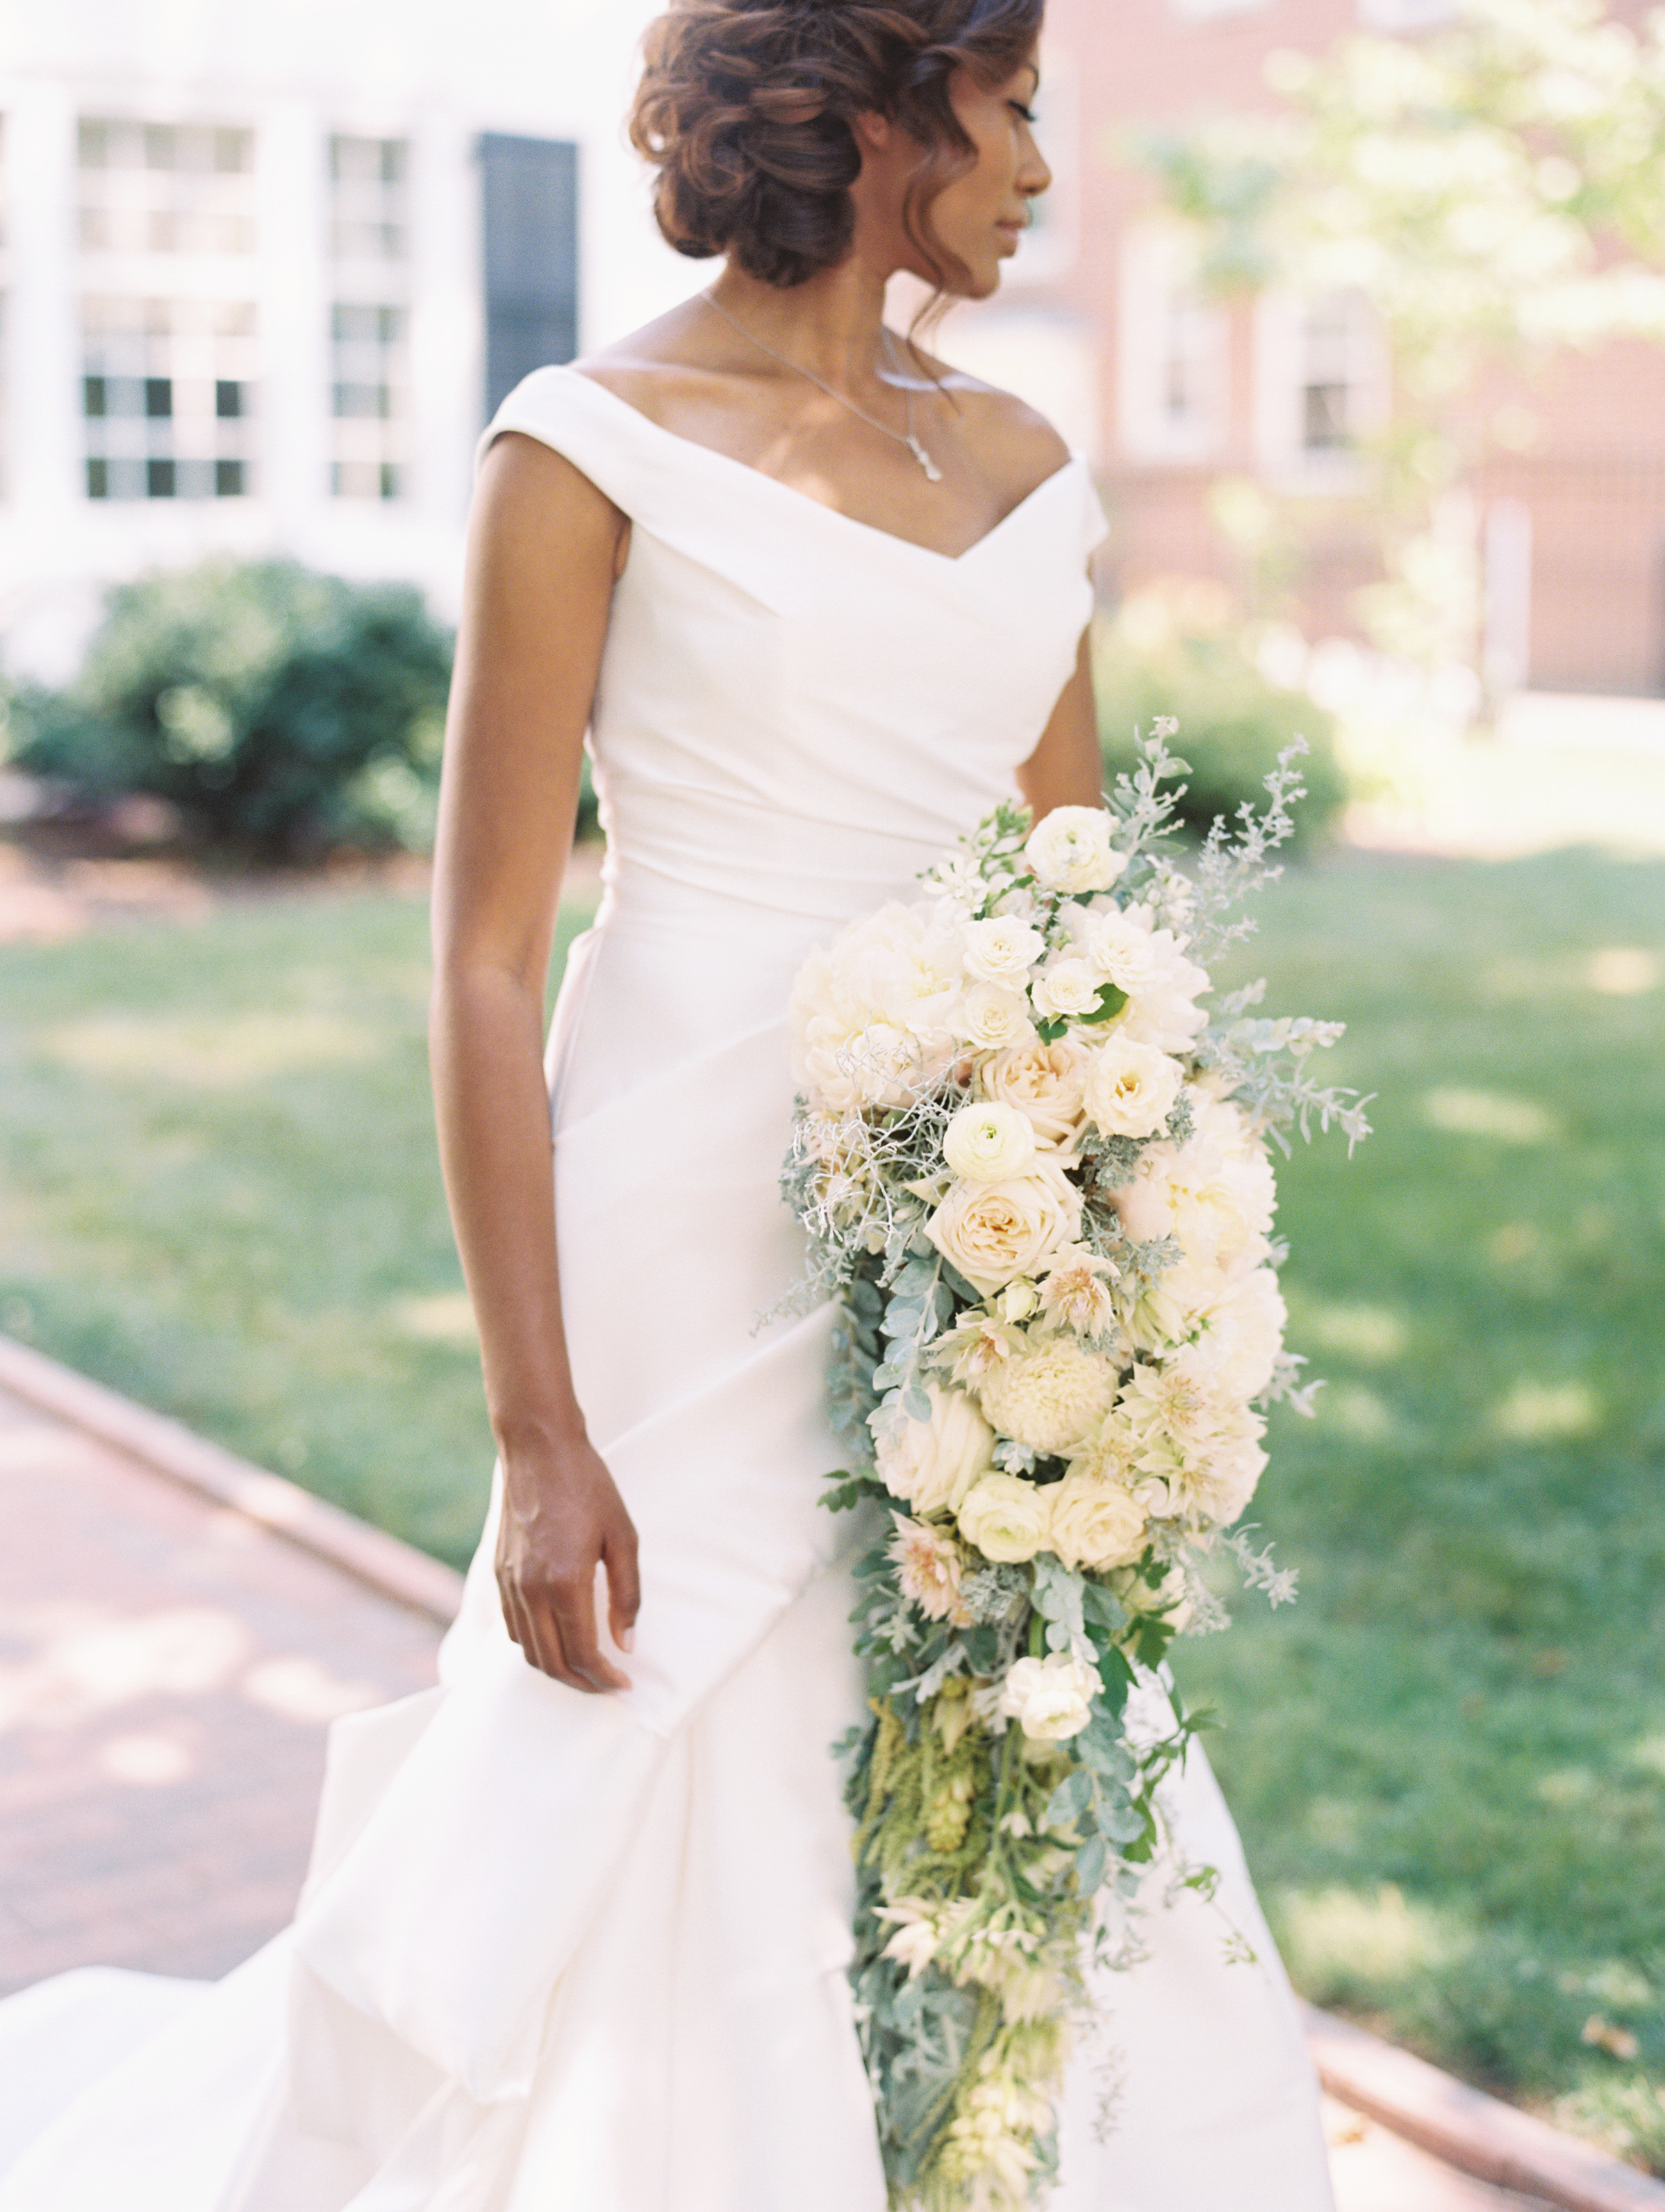 Cascading Wedding Bouquet with Garden Roses and Peonies